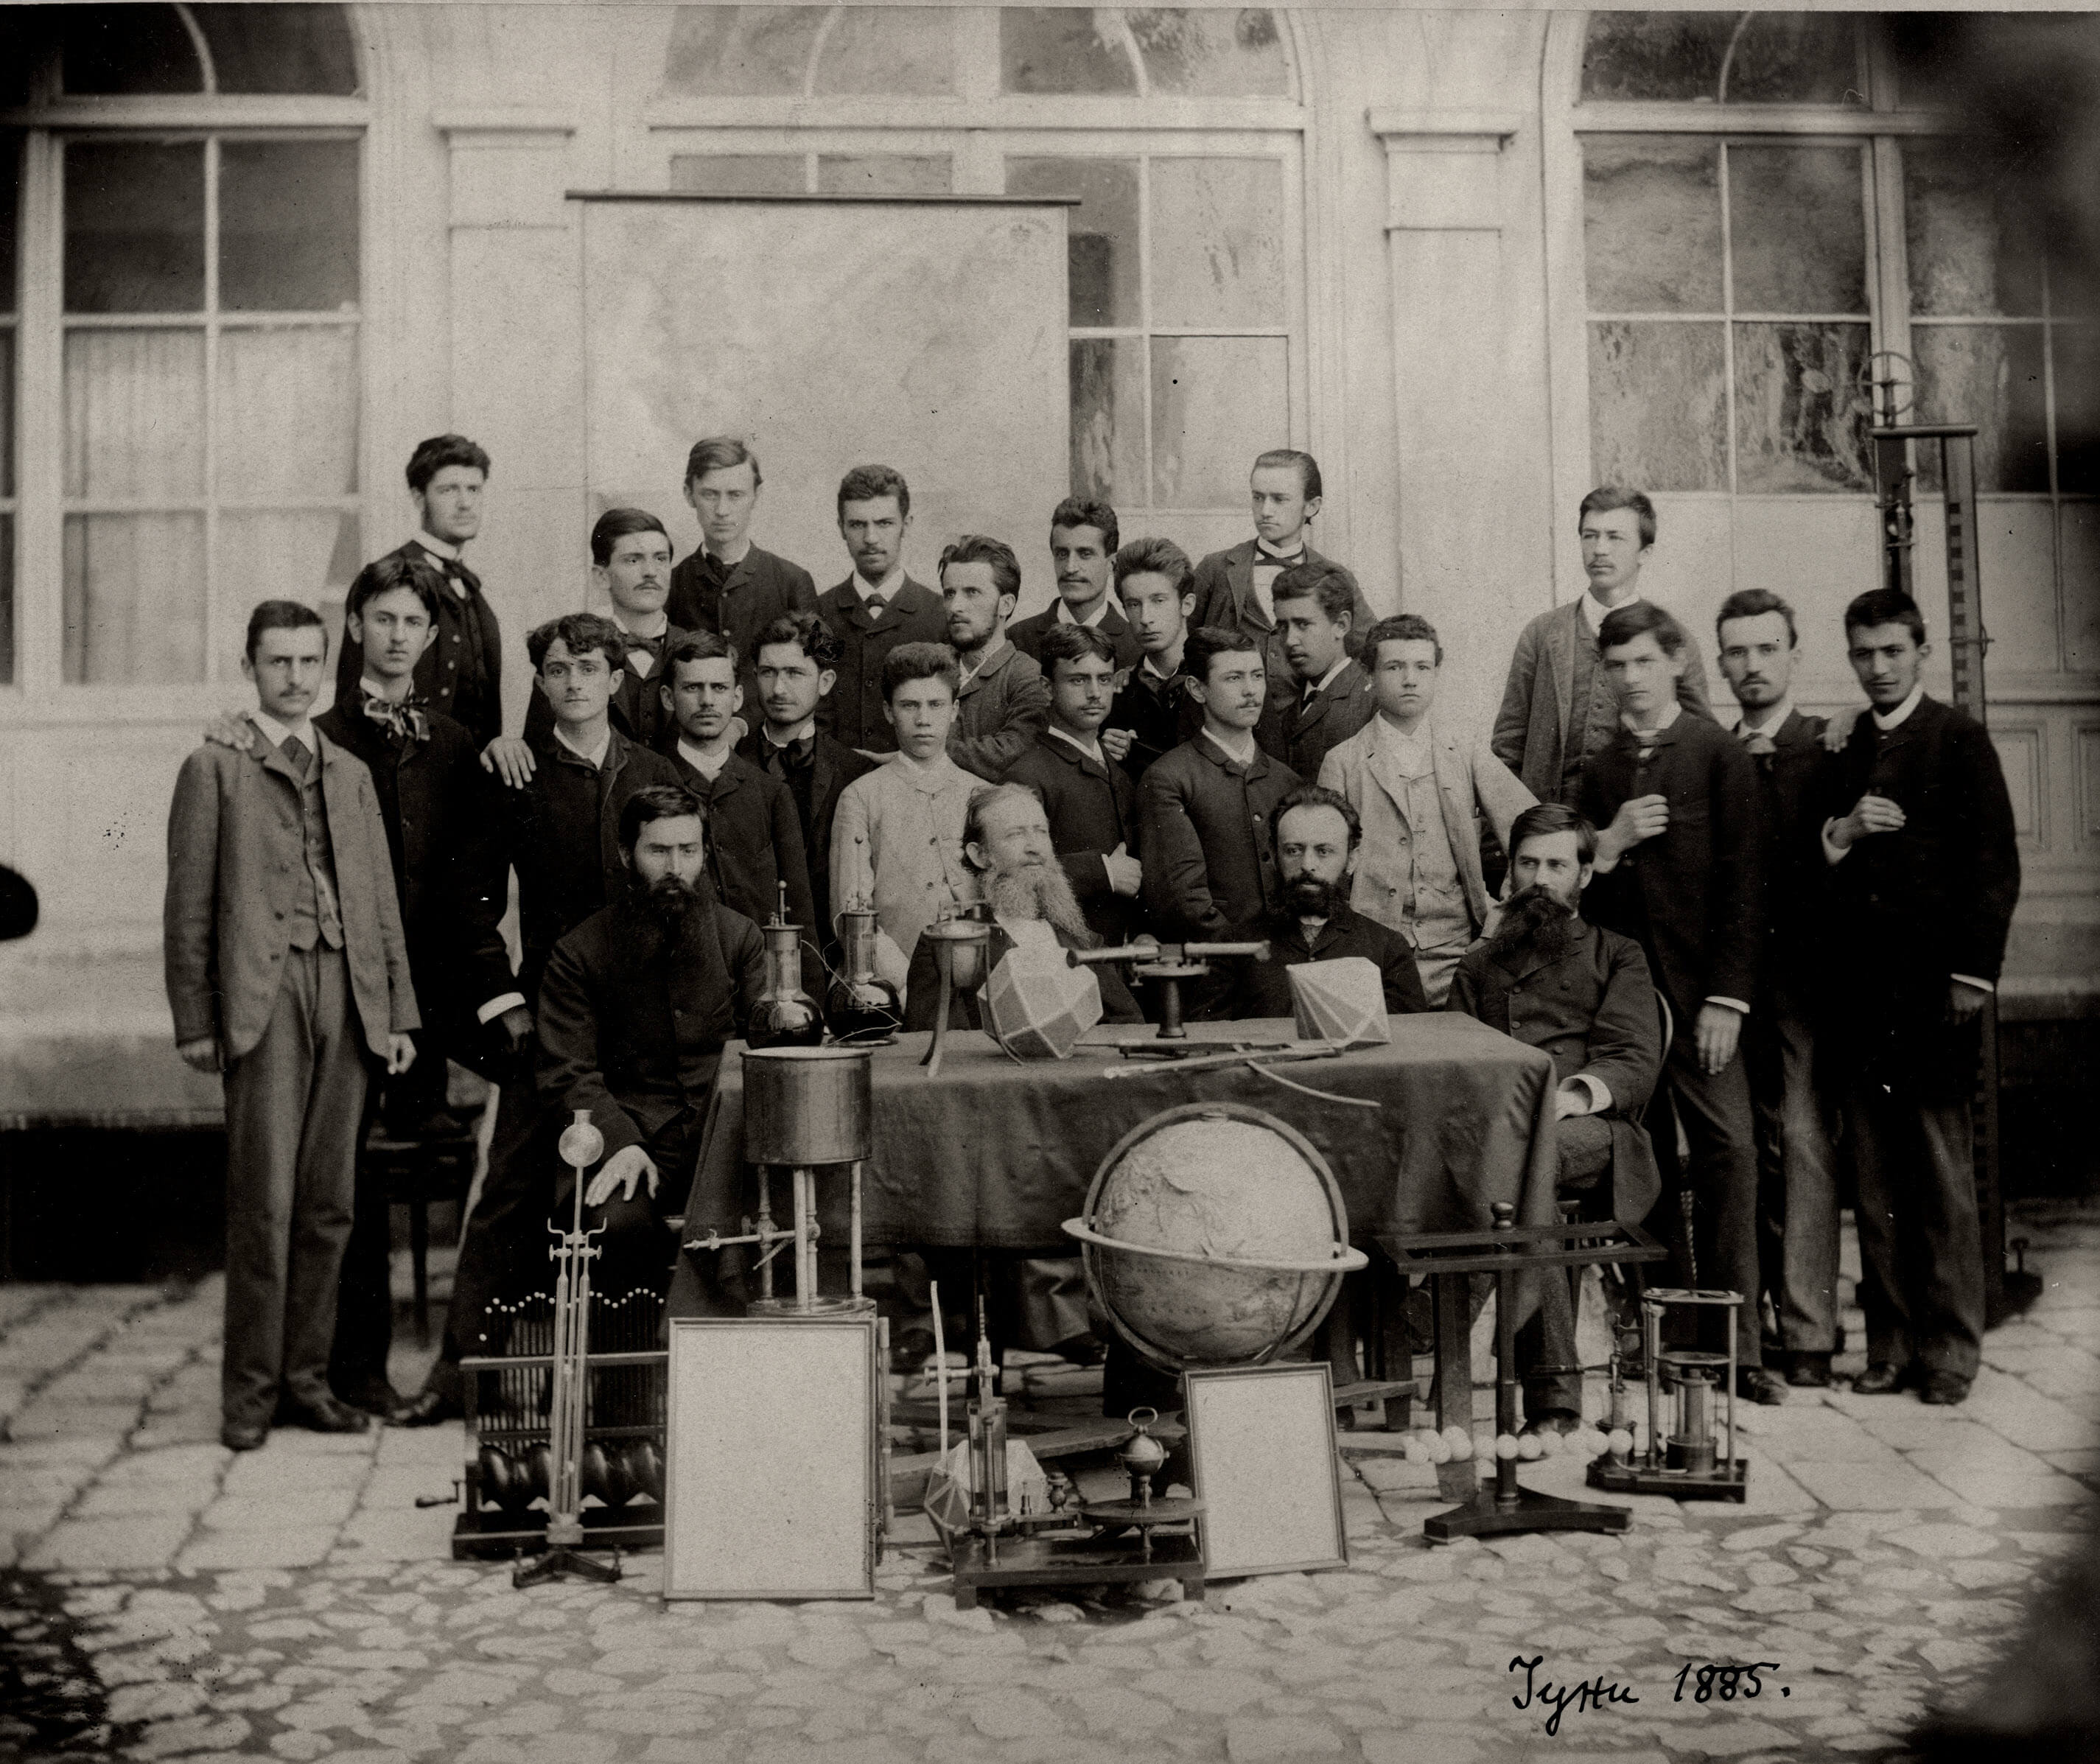 Graduates of the First Belgrade Gymnasium, June 1885 (SASA Archive, 14197/15)